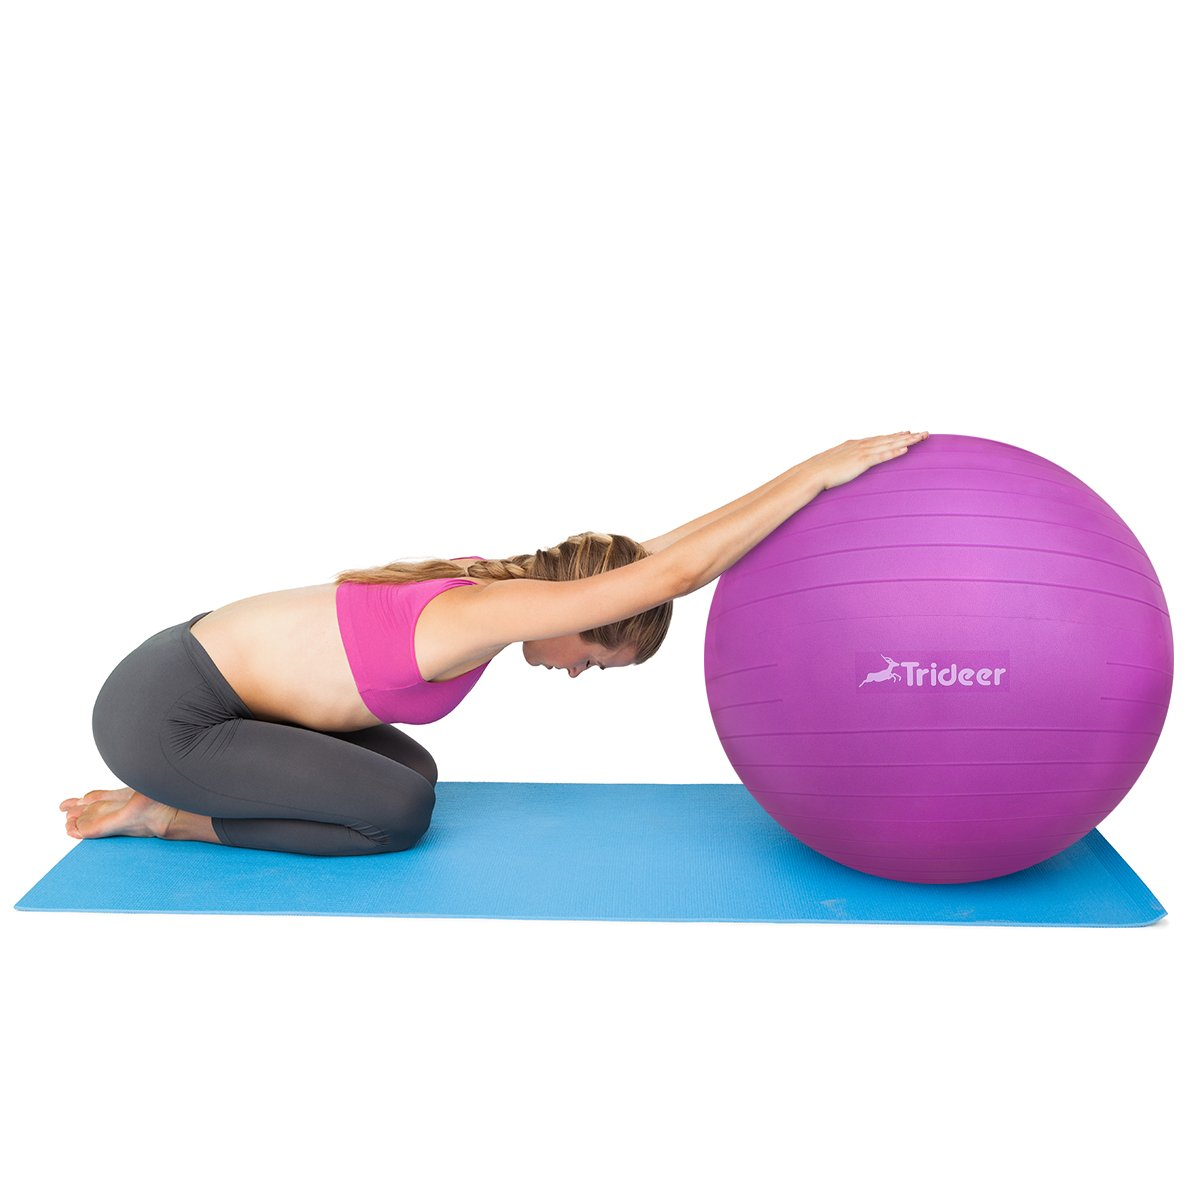 Stability Ball Supports 2200lbs Yoga Ball Trideer Exercise Ball Heavy Duty Ball Chair Birthing Ball with Quick Pump Anti-Burst /& Extra Thick Multiple Color